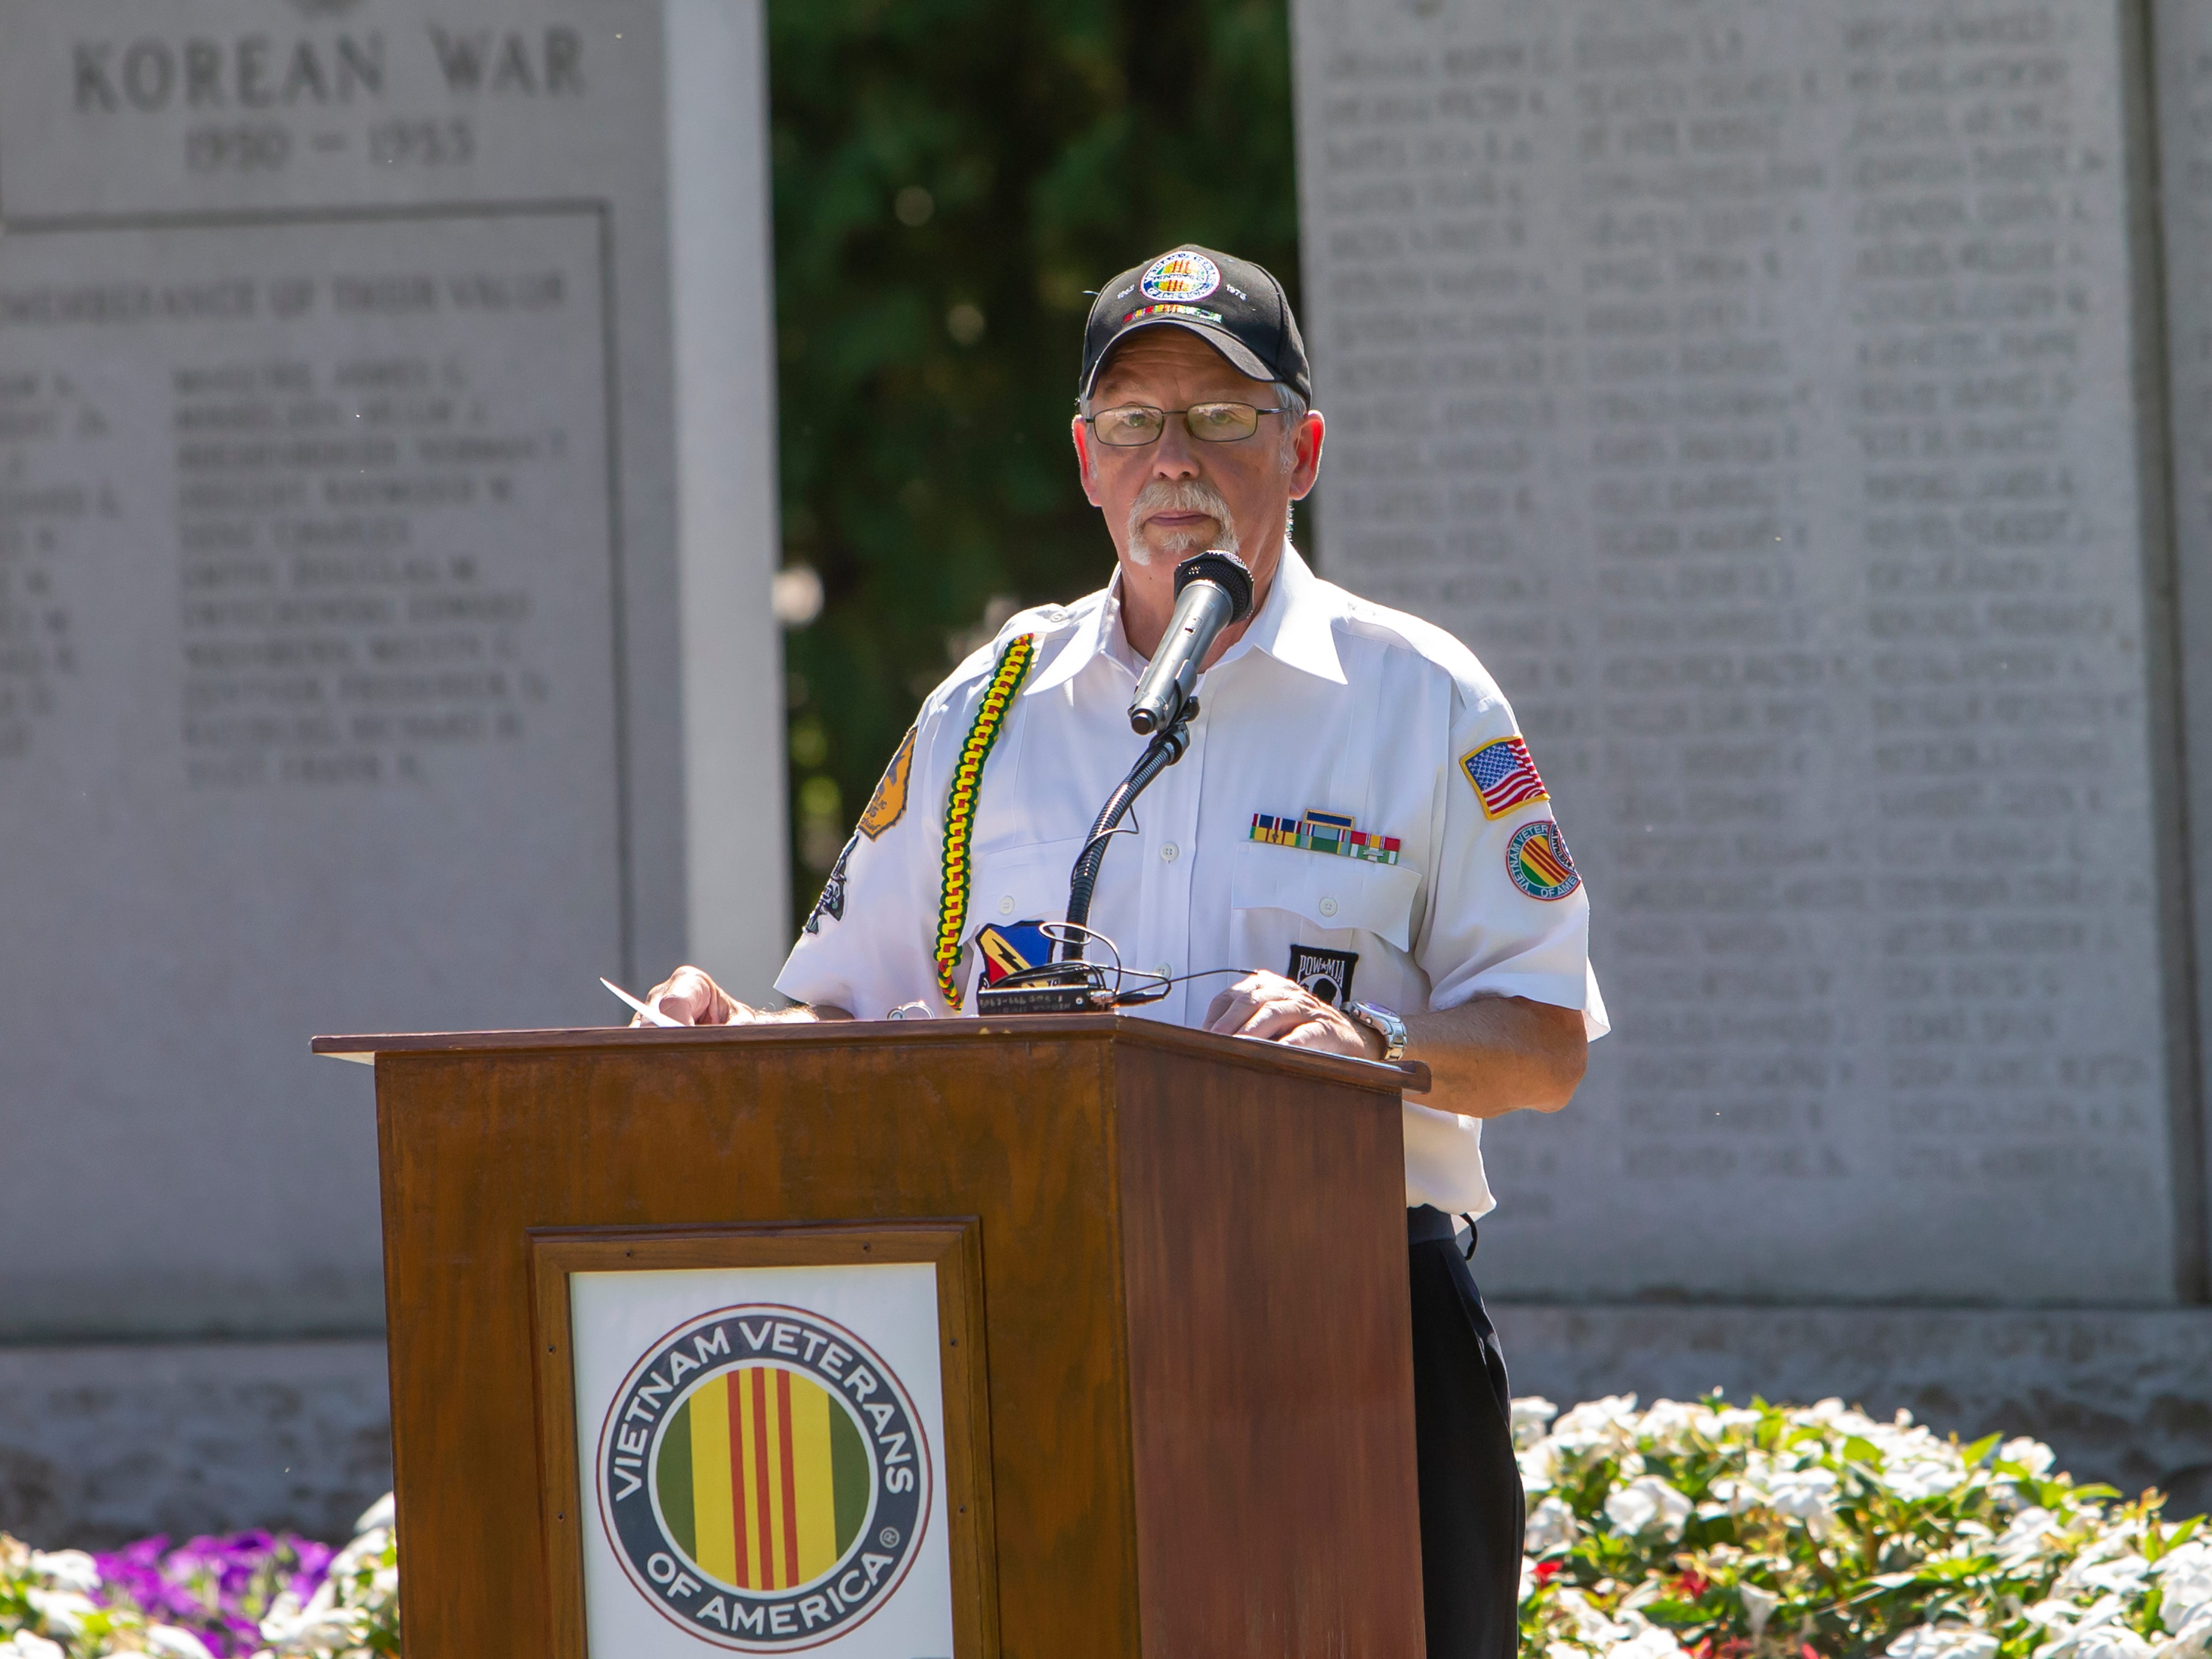 Duane Canon, President VVA Chapter 437, provides new and updated MIA numbers on the return of remains during the annual POW MIA Remembrance Ceremony at South Park Veterans Memorial on Saturday, September 15, 2018.